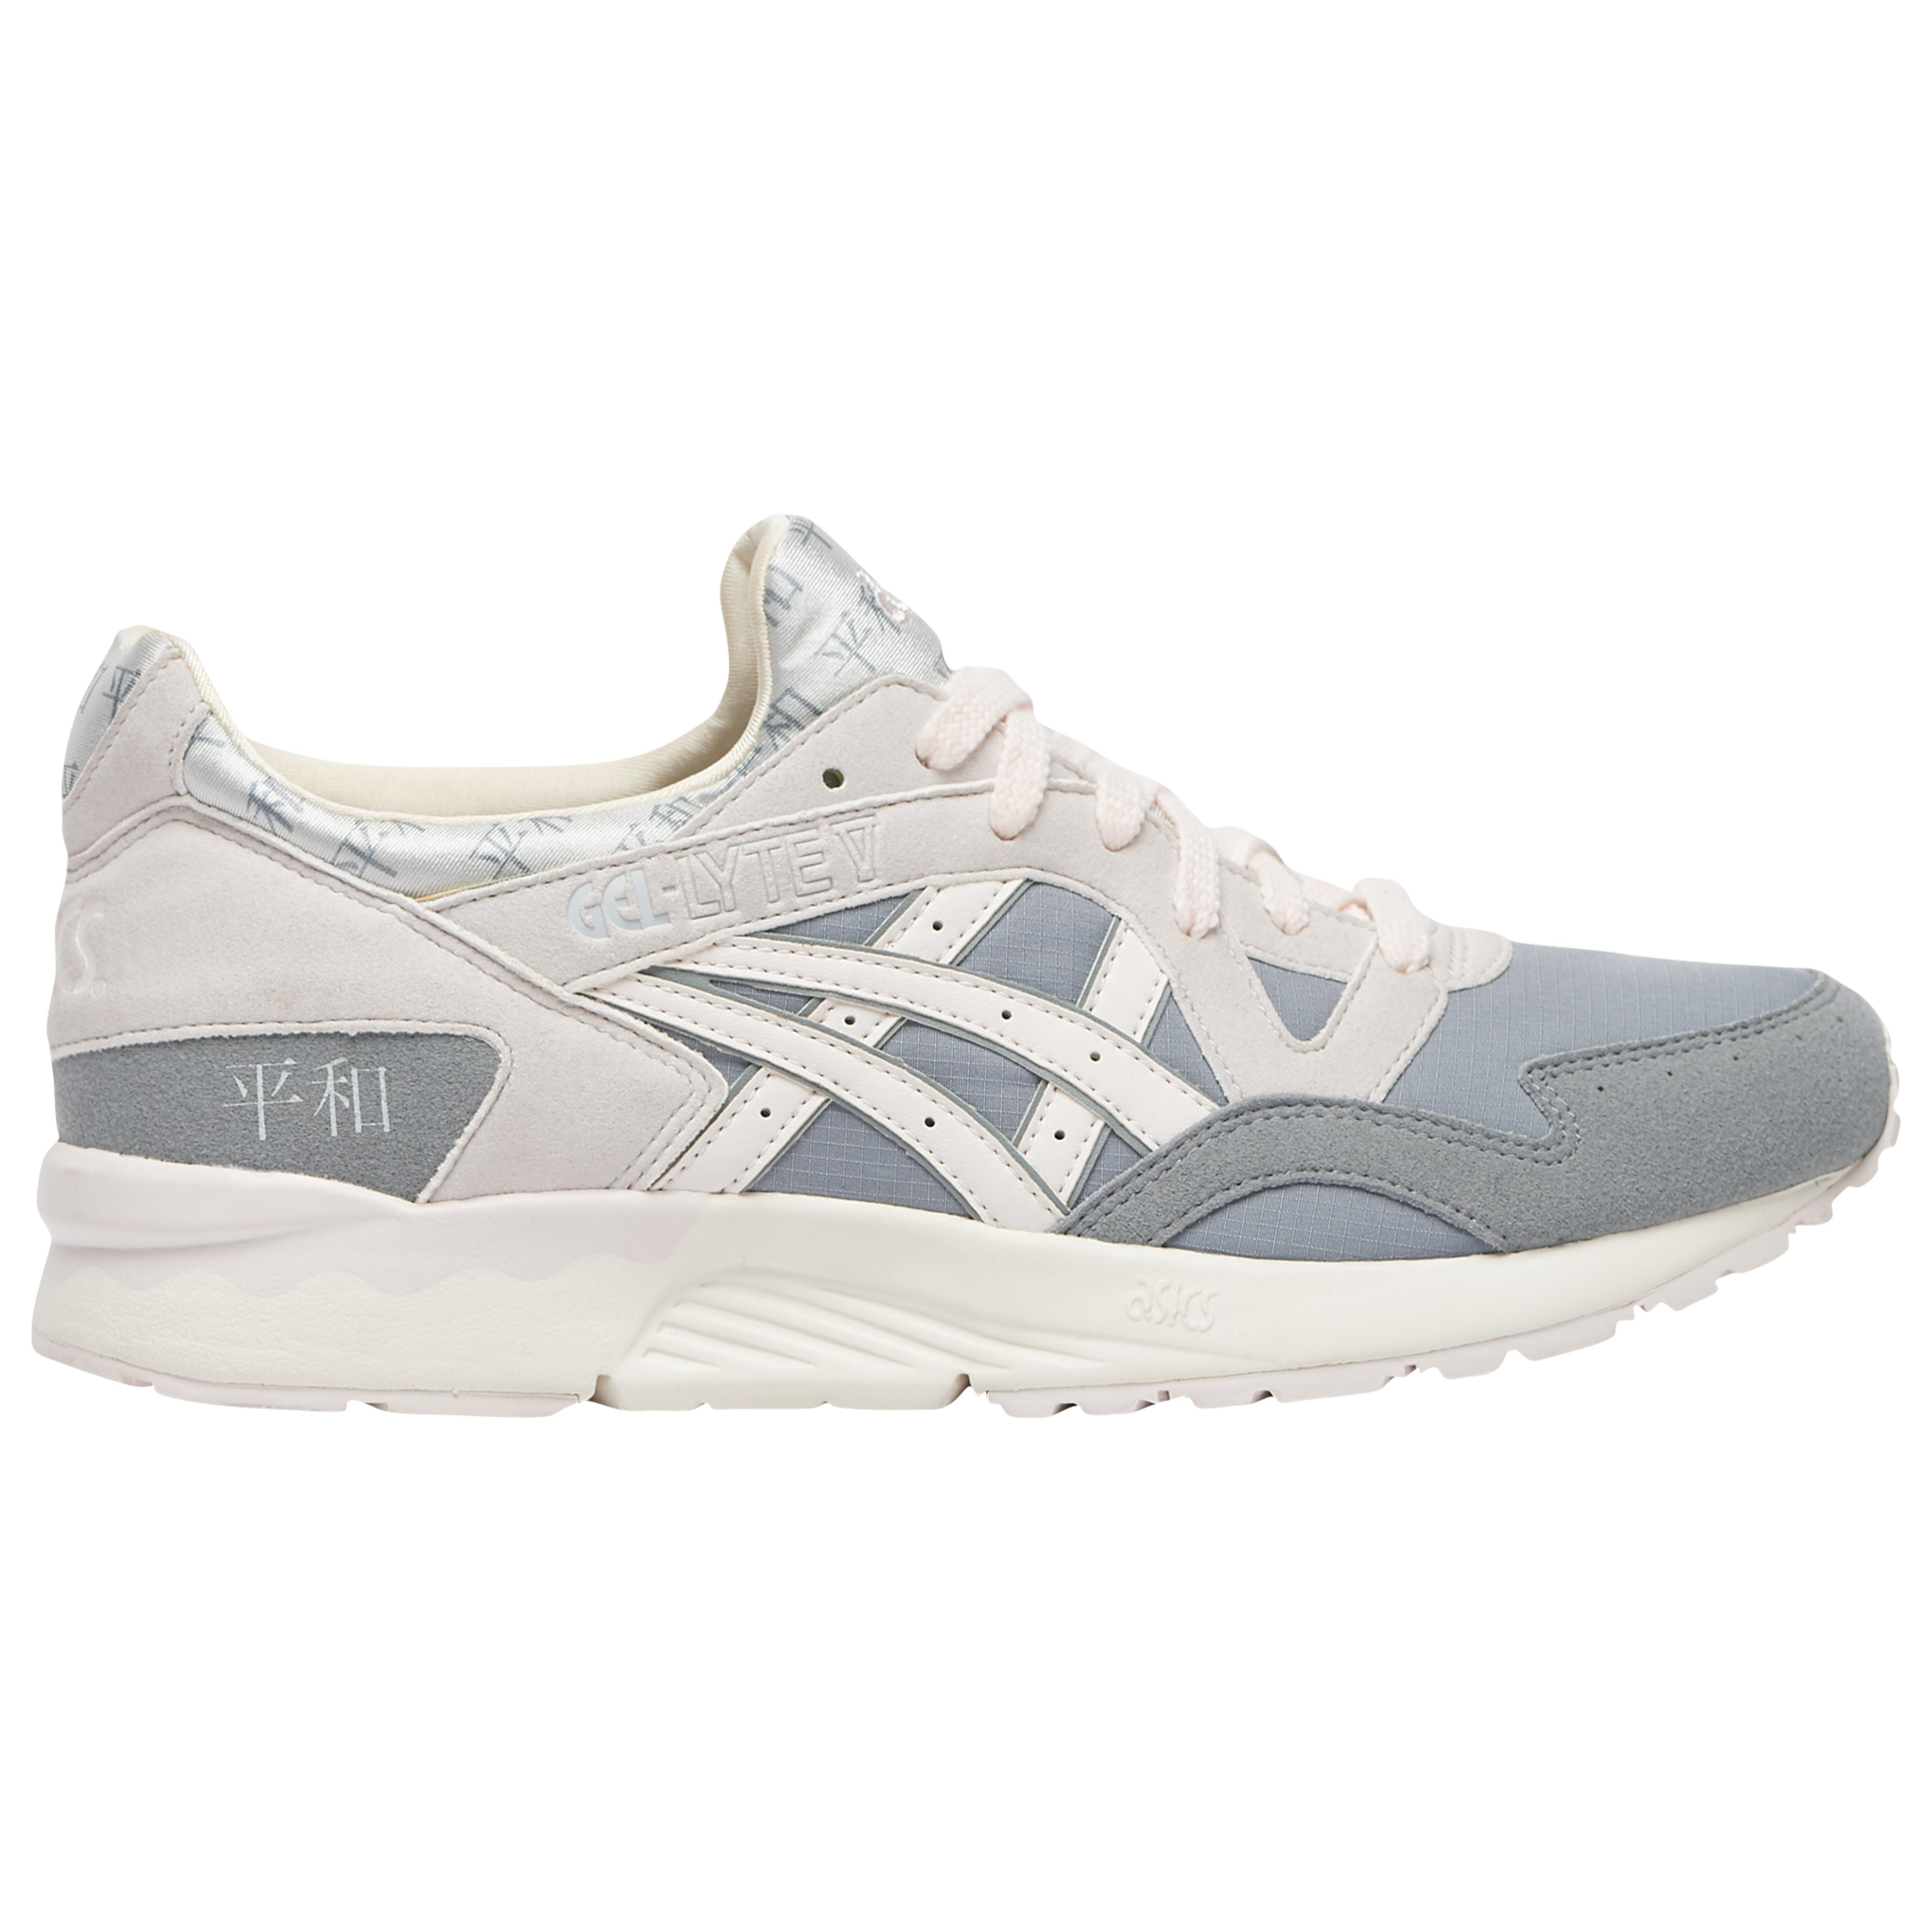 Asics Suede Gel-lyte V - Shoes in Stone